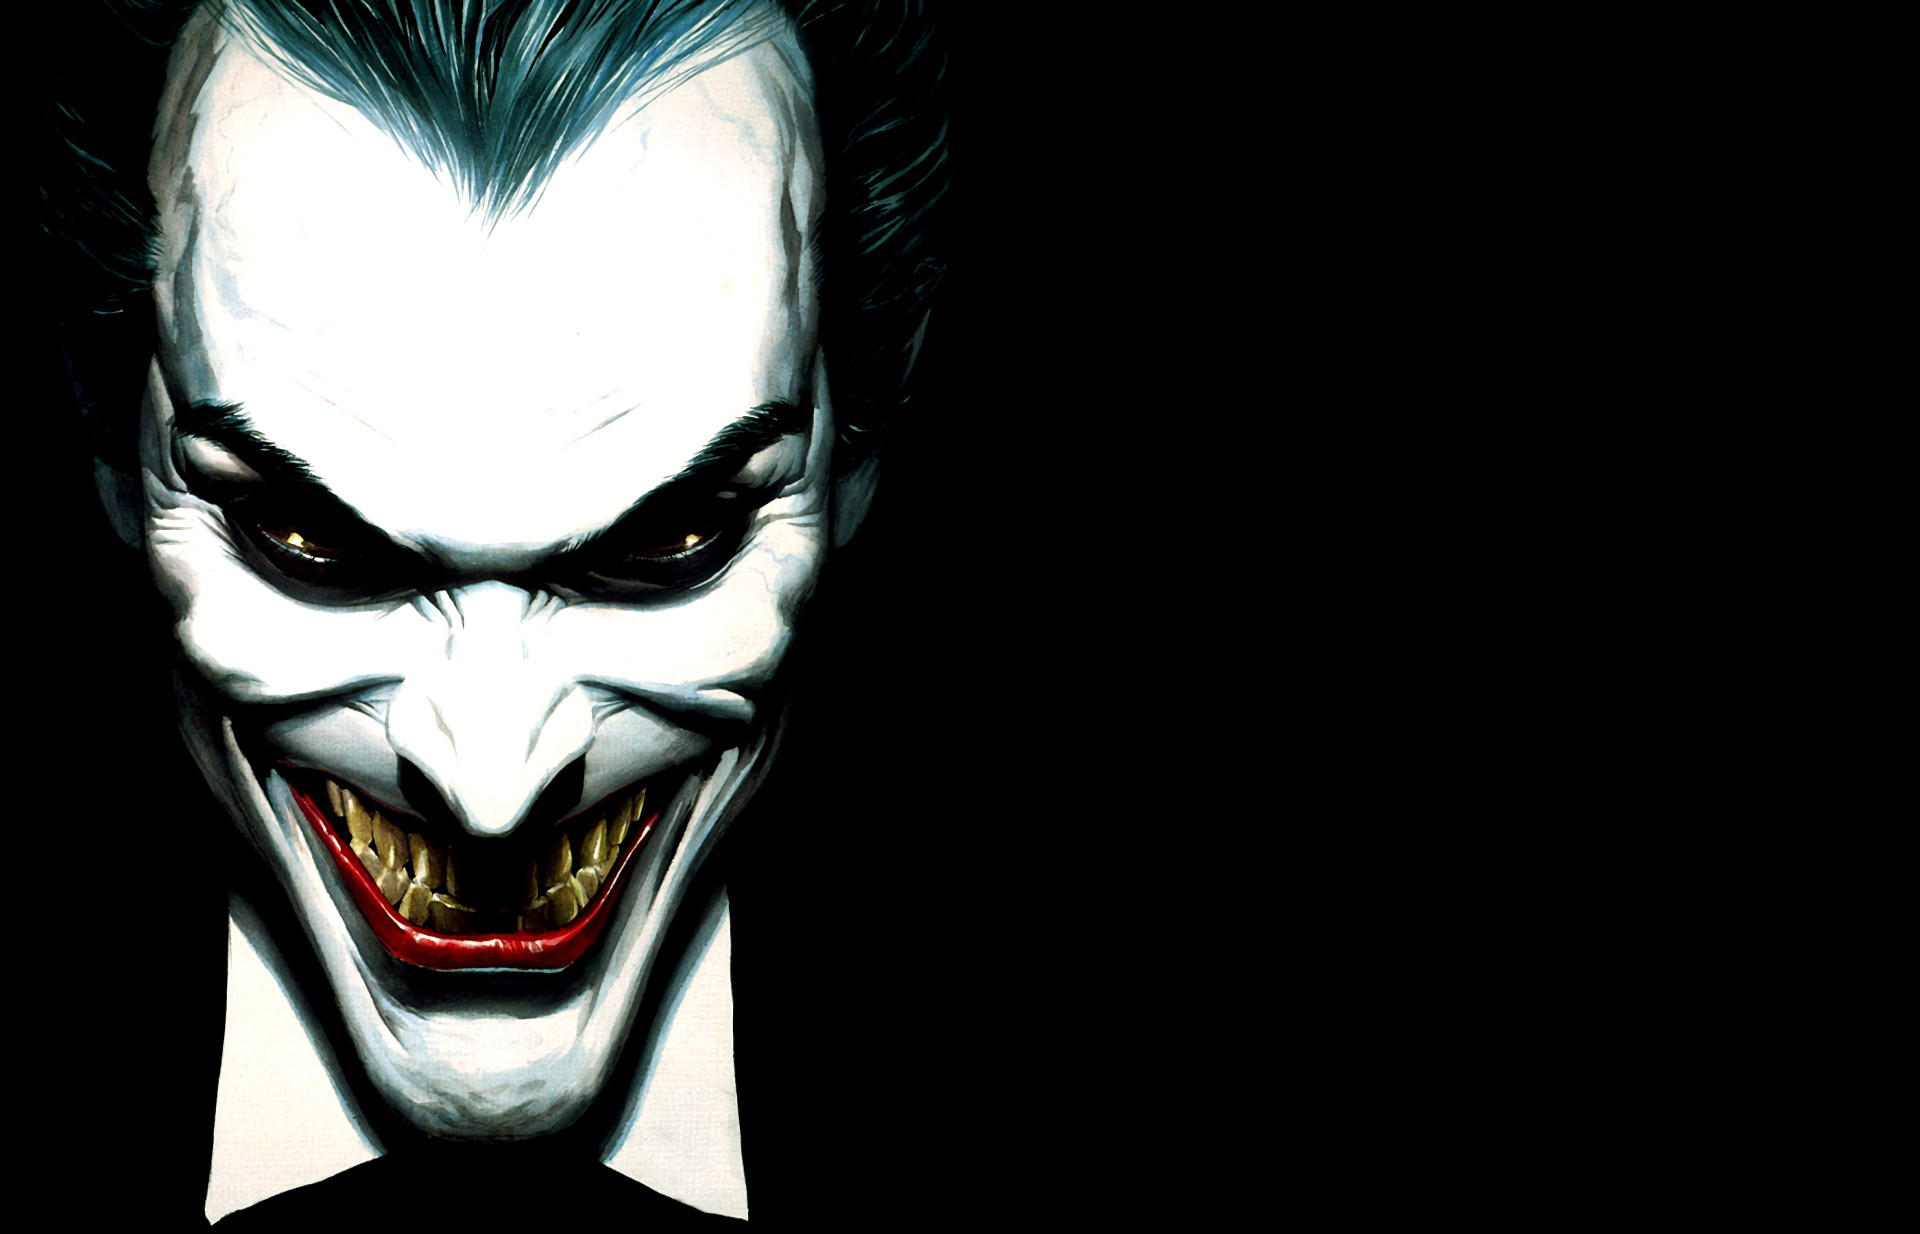 1920x1234 Joker Wallpapers for Widescreen Desktop PC Full HD ×